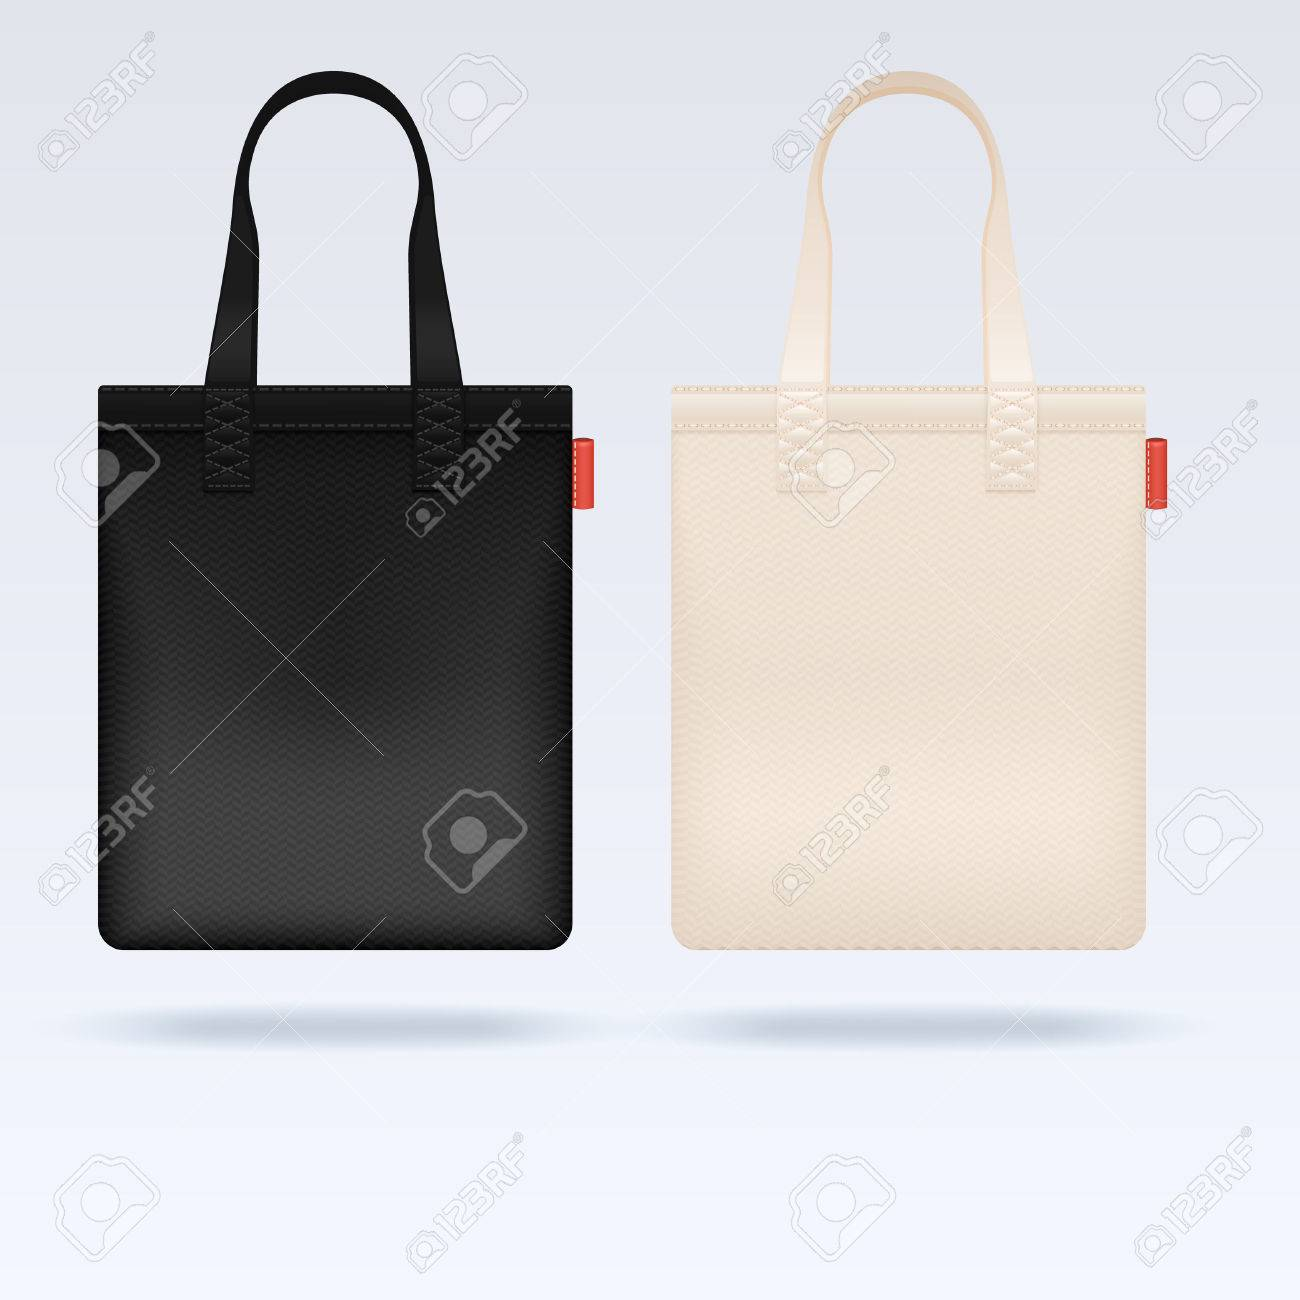 White And Black Fabric Cloth Tote Bags Vector Mockup. Realistic ...